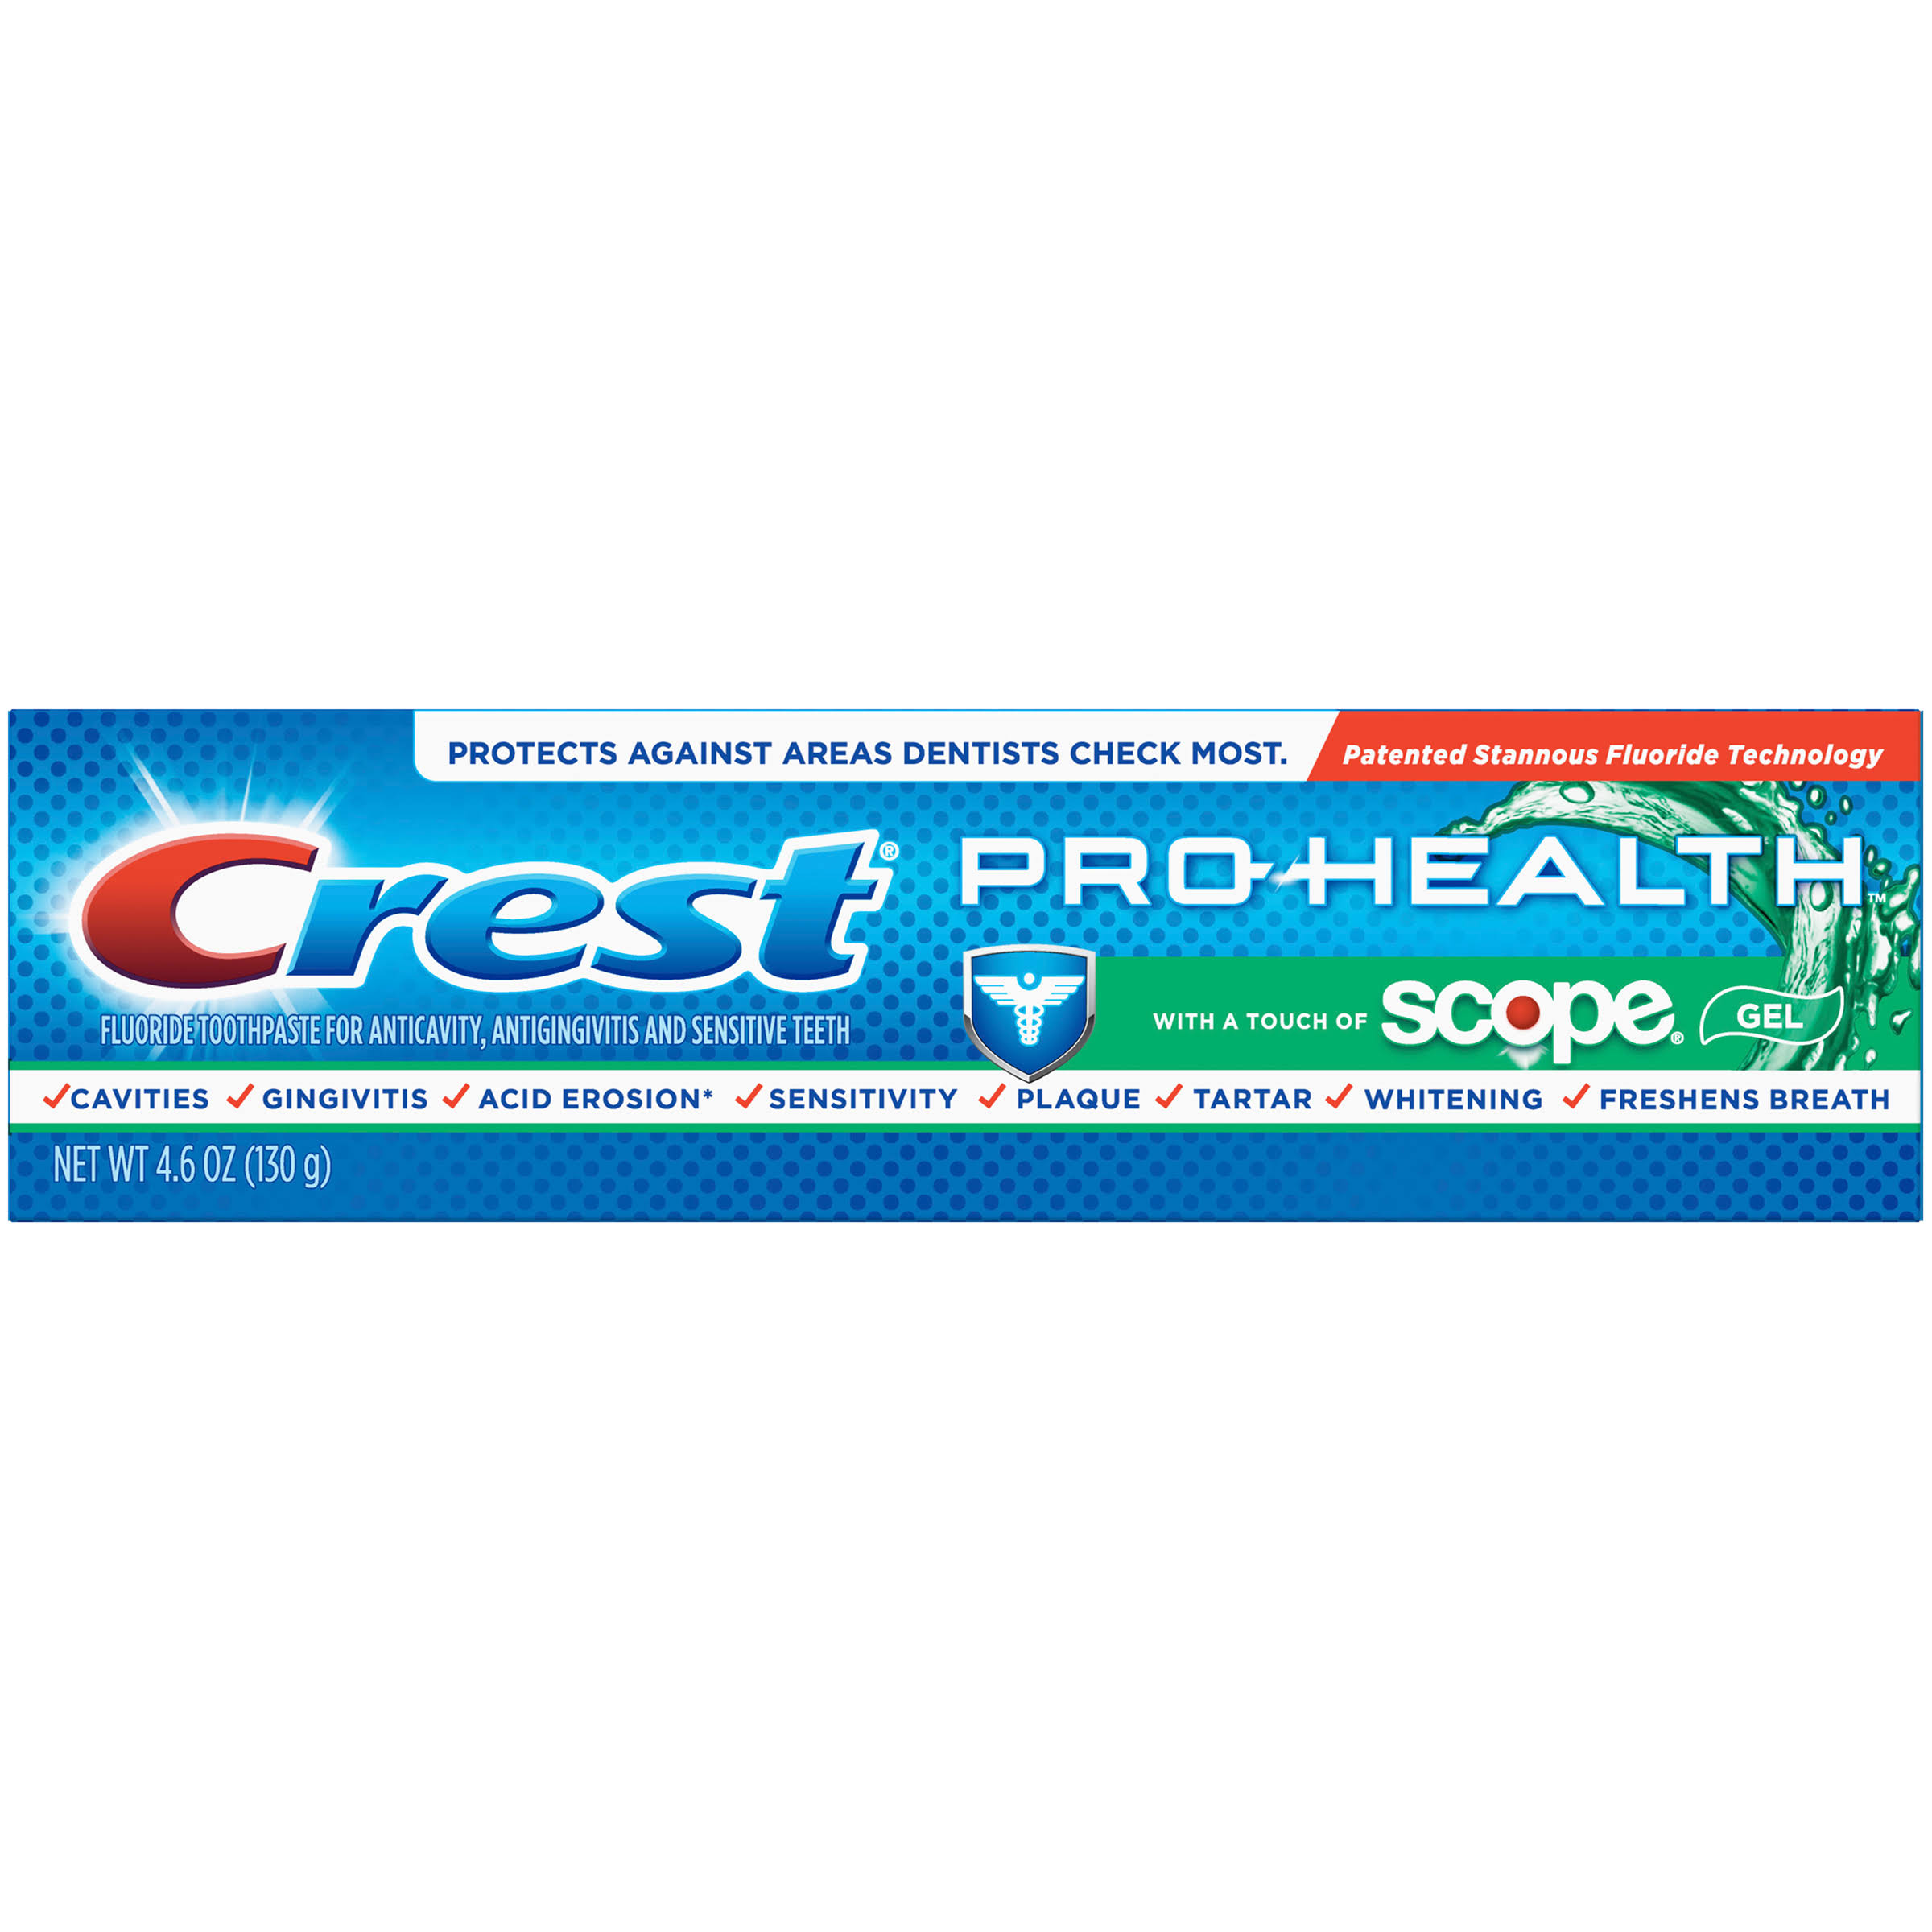 Crest Pro-Health with a Touch of Scope Whitening Toothpaste - 4.6oz